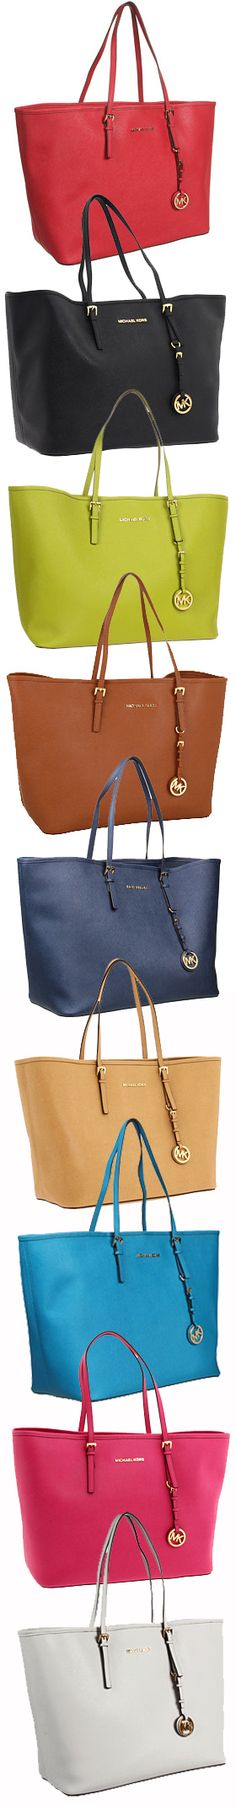 MICHAEL Michael Kors Saffiano Medium Travel Tote.  I want one in every color!